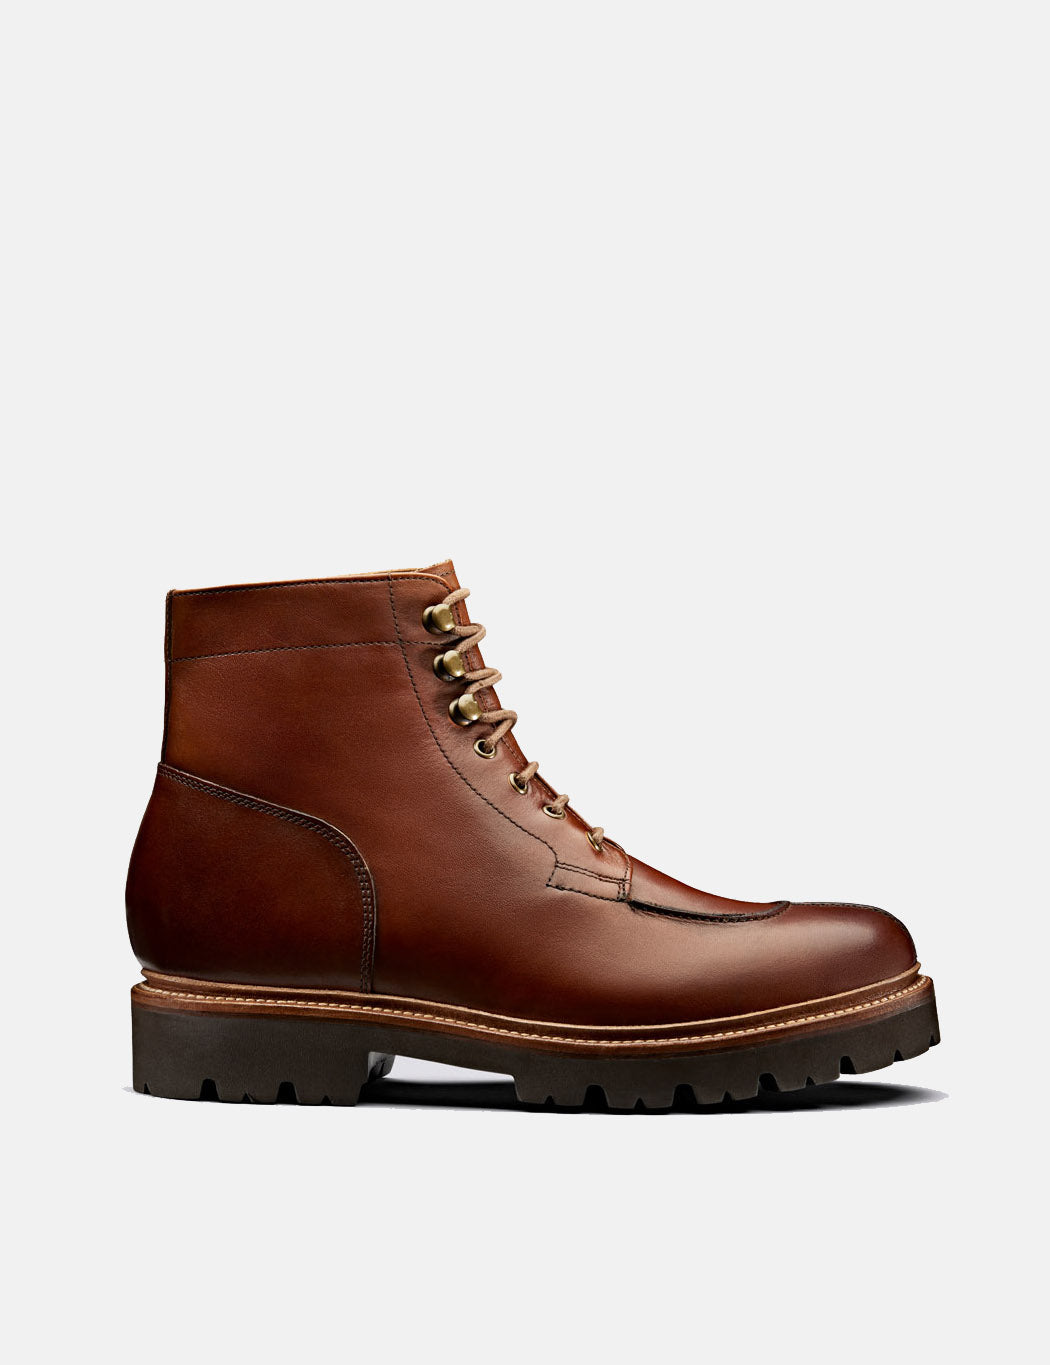 Grenson Grover Boot (Leather) - Tan